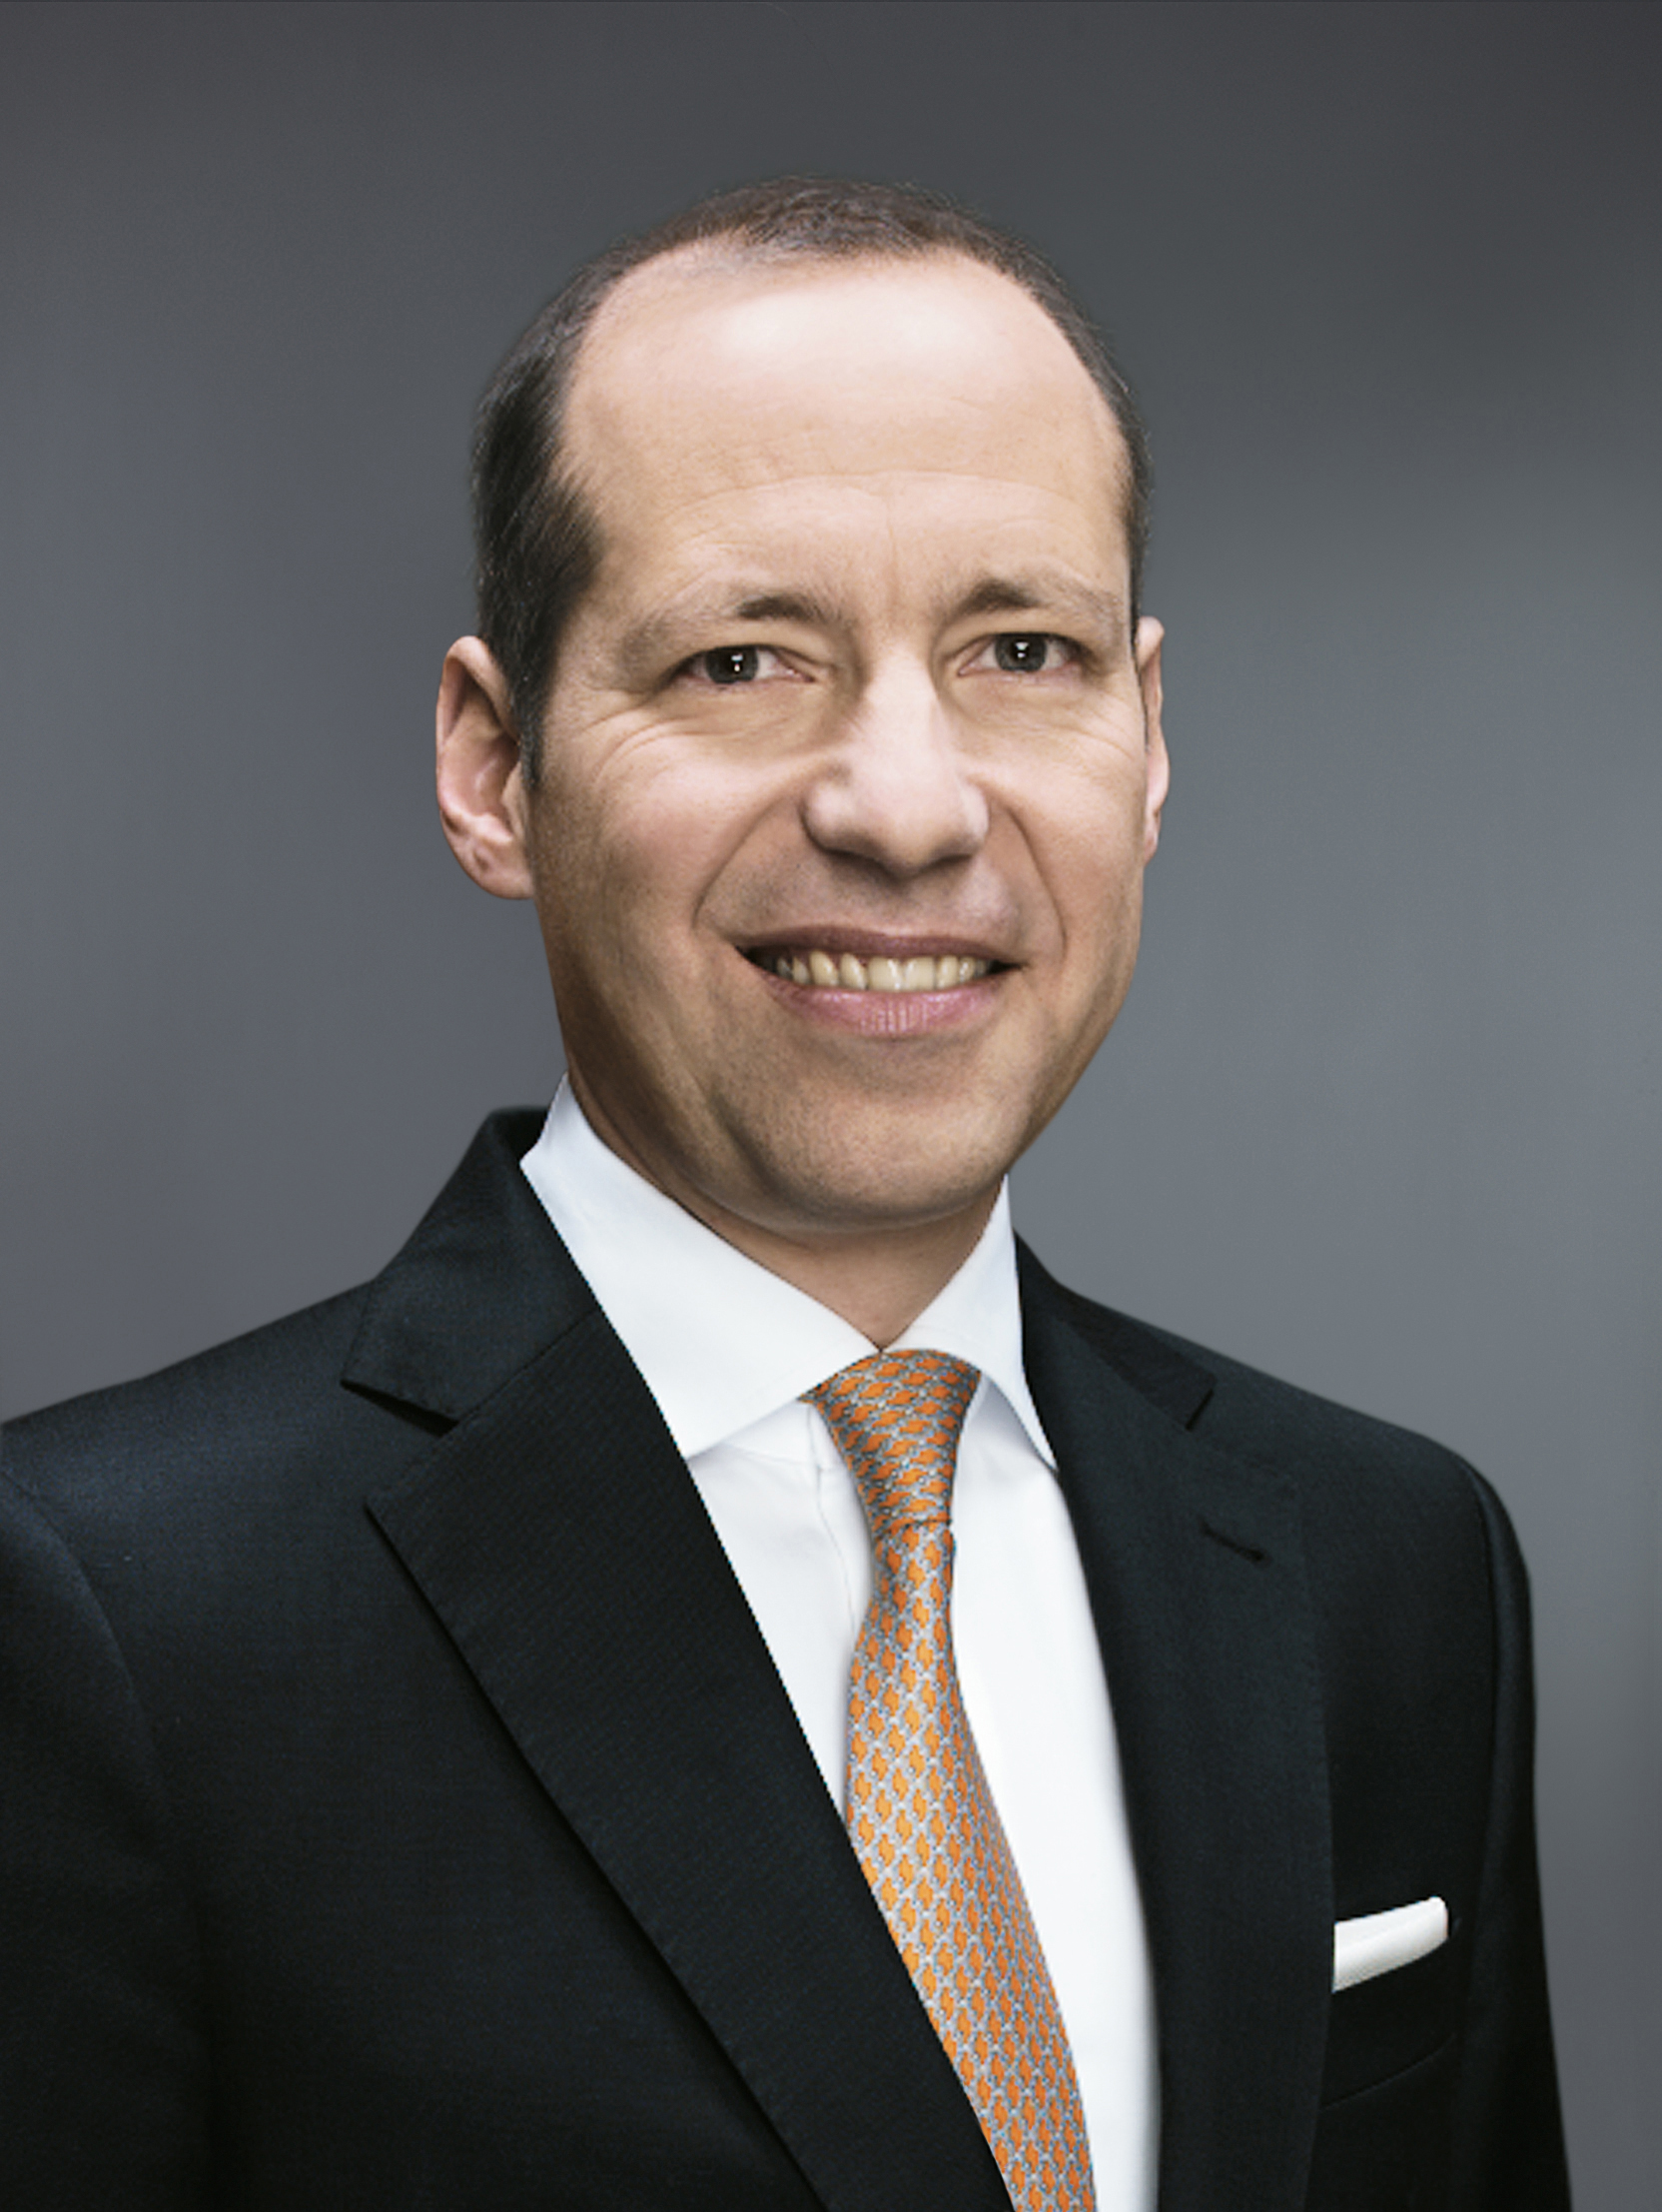 Nuremberg, 20 February 2014 – The Supervisory Board of GfK SE has extended the contract of CEO Matthias Hartmann by five years. - Matthias_Hartmann_CEO_GfK_300dpi1